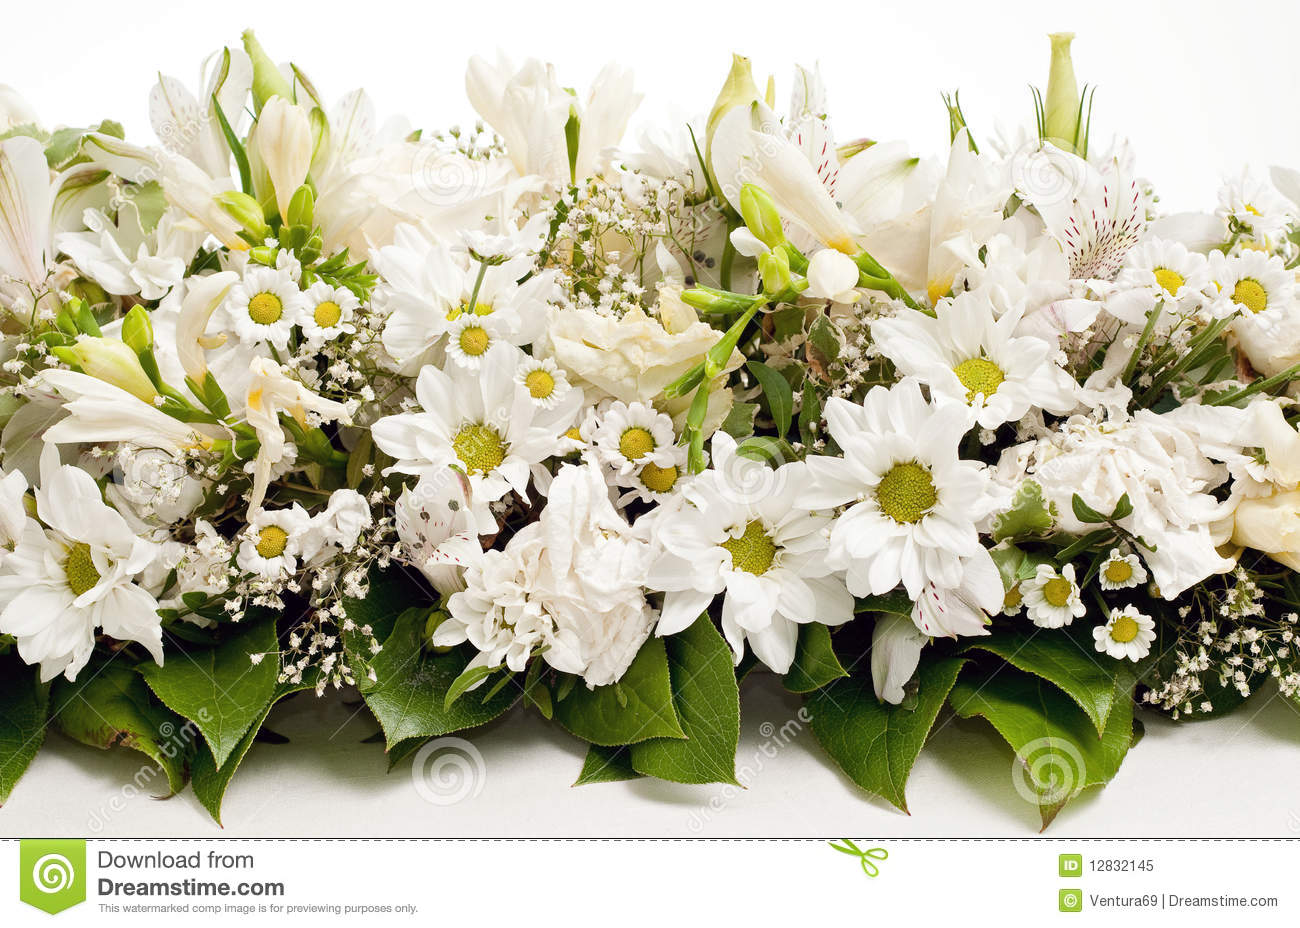 White flowers decorations 27 hd wallpaper hdflowerwallpaper white flowers decorations background mightylinksfo